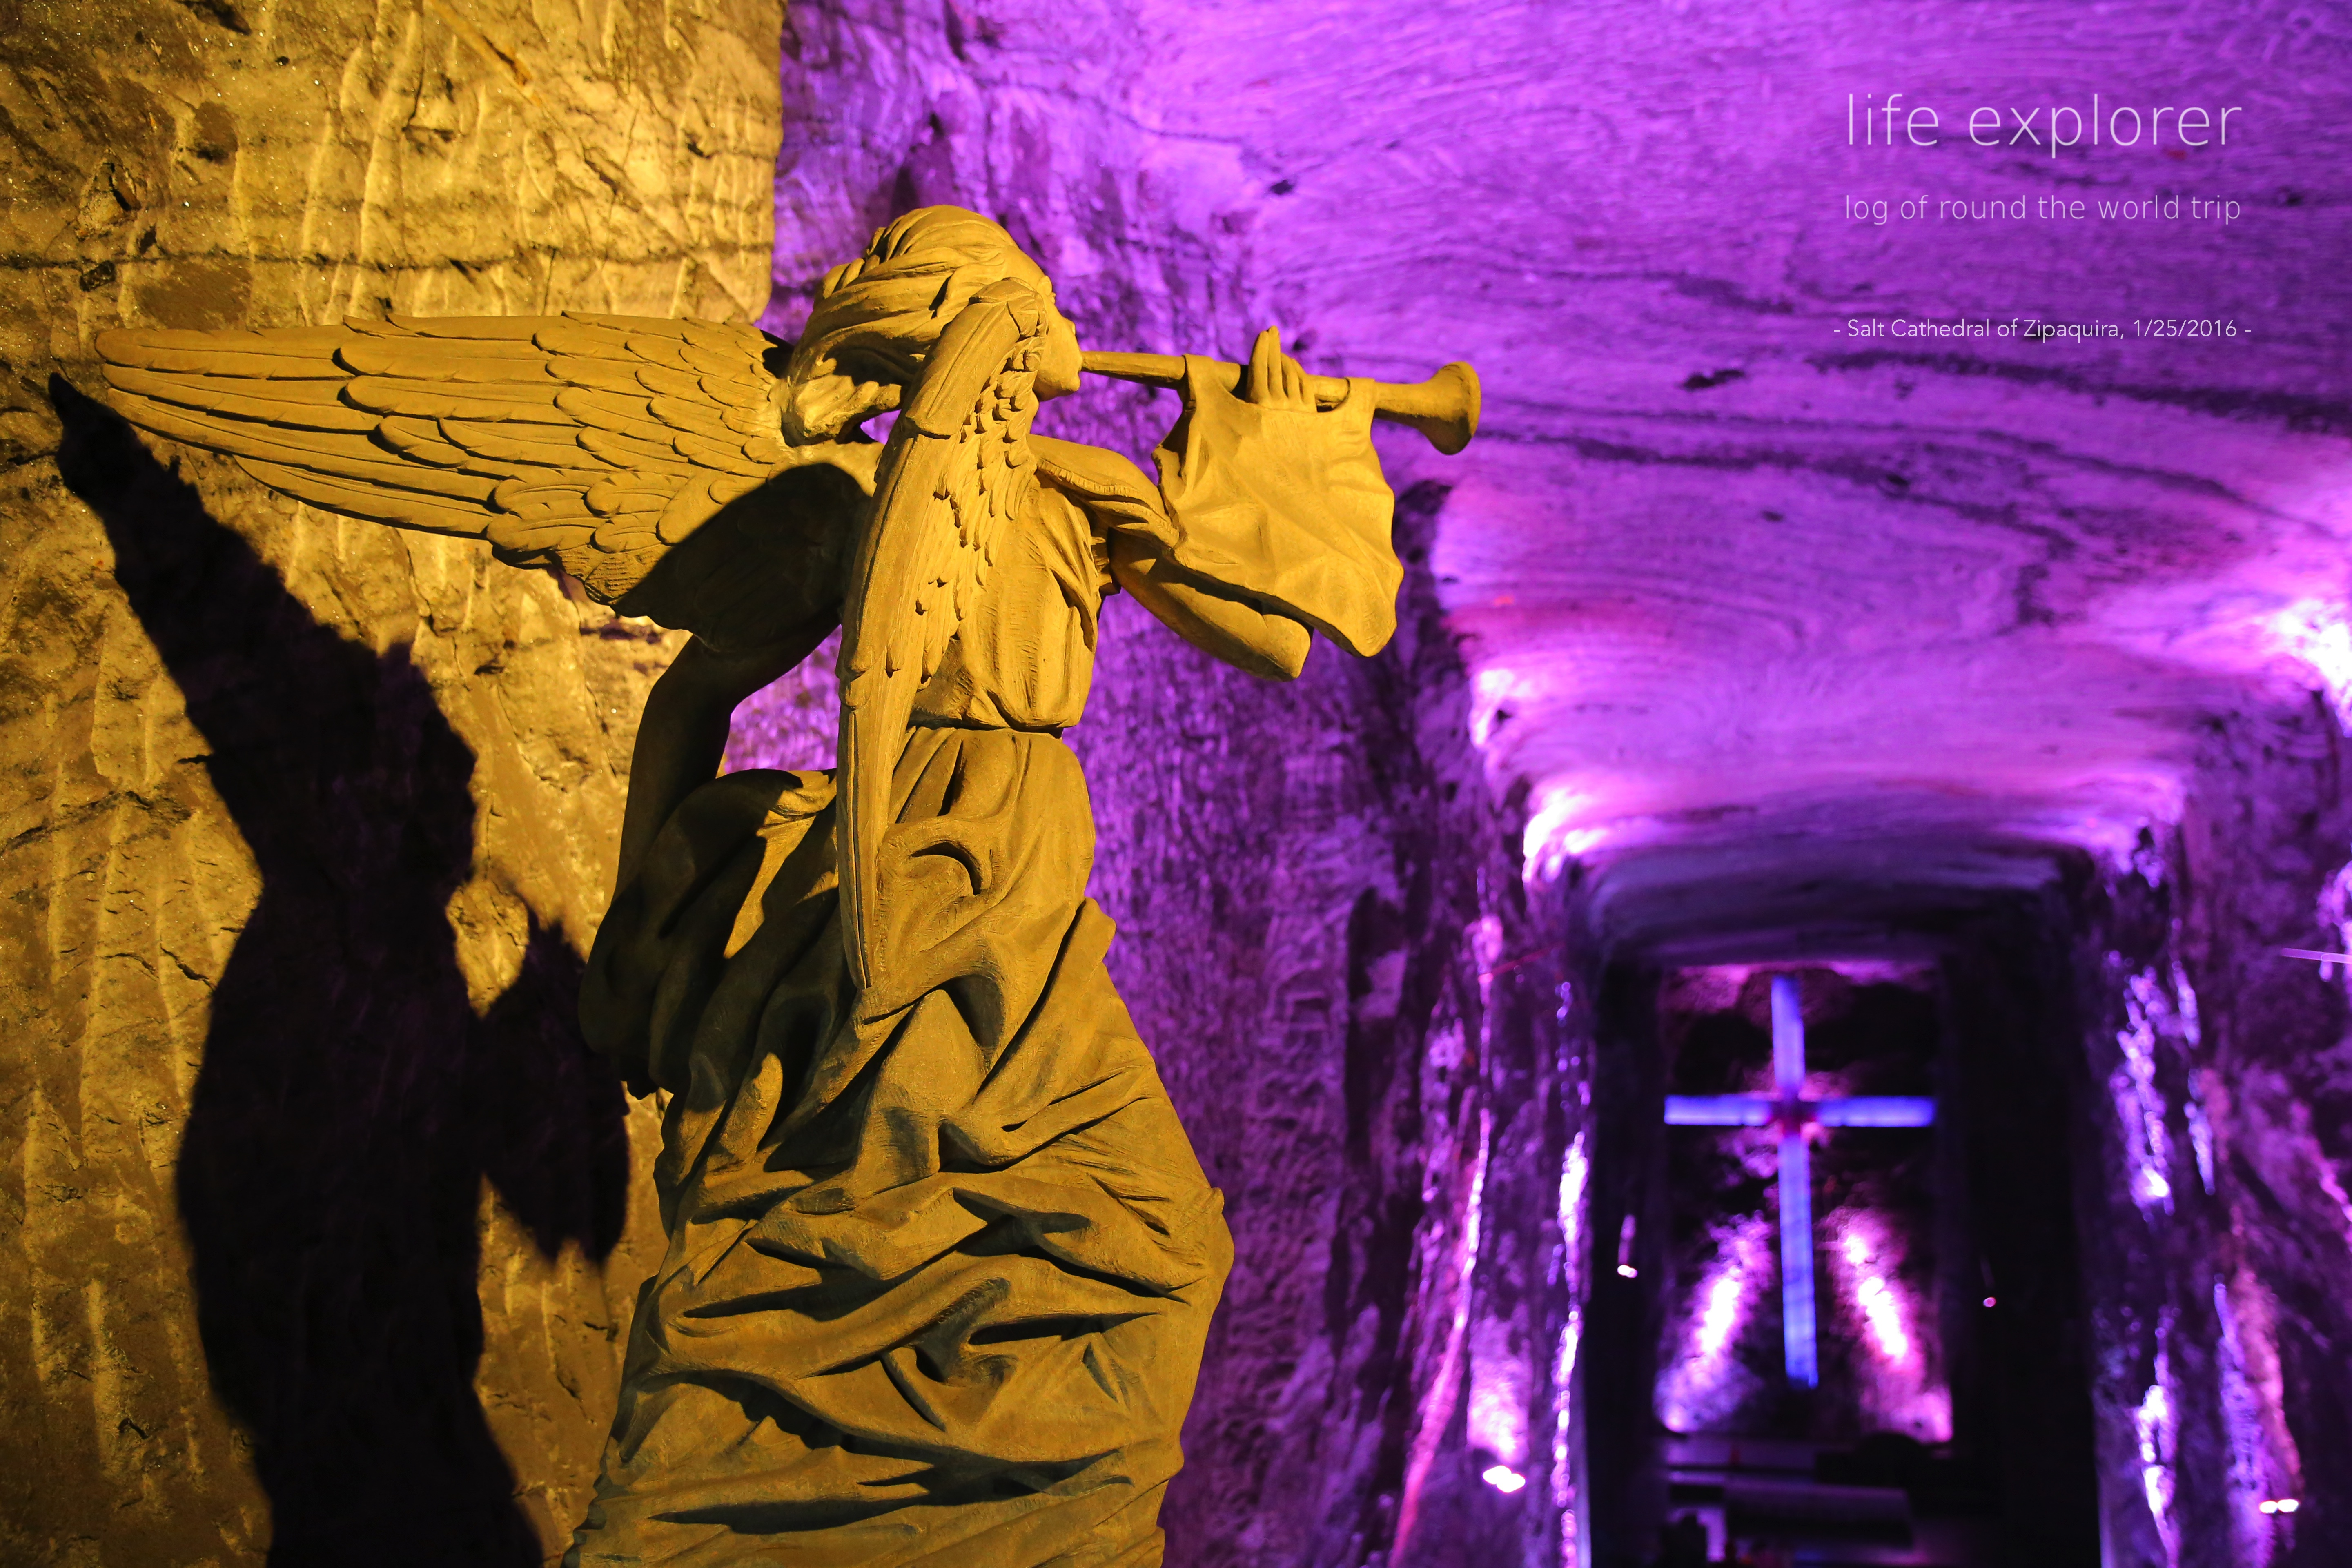 [Photo] 160124 Colombia – Salt Cathedral of Zipaquira